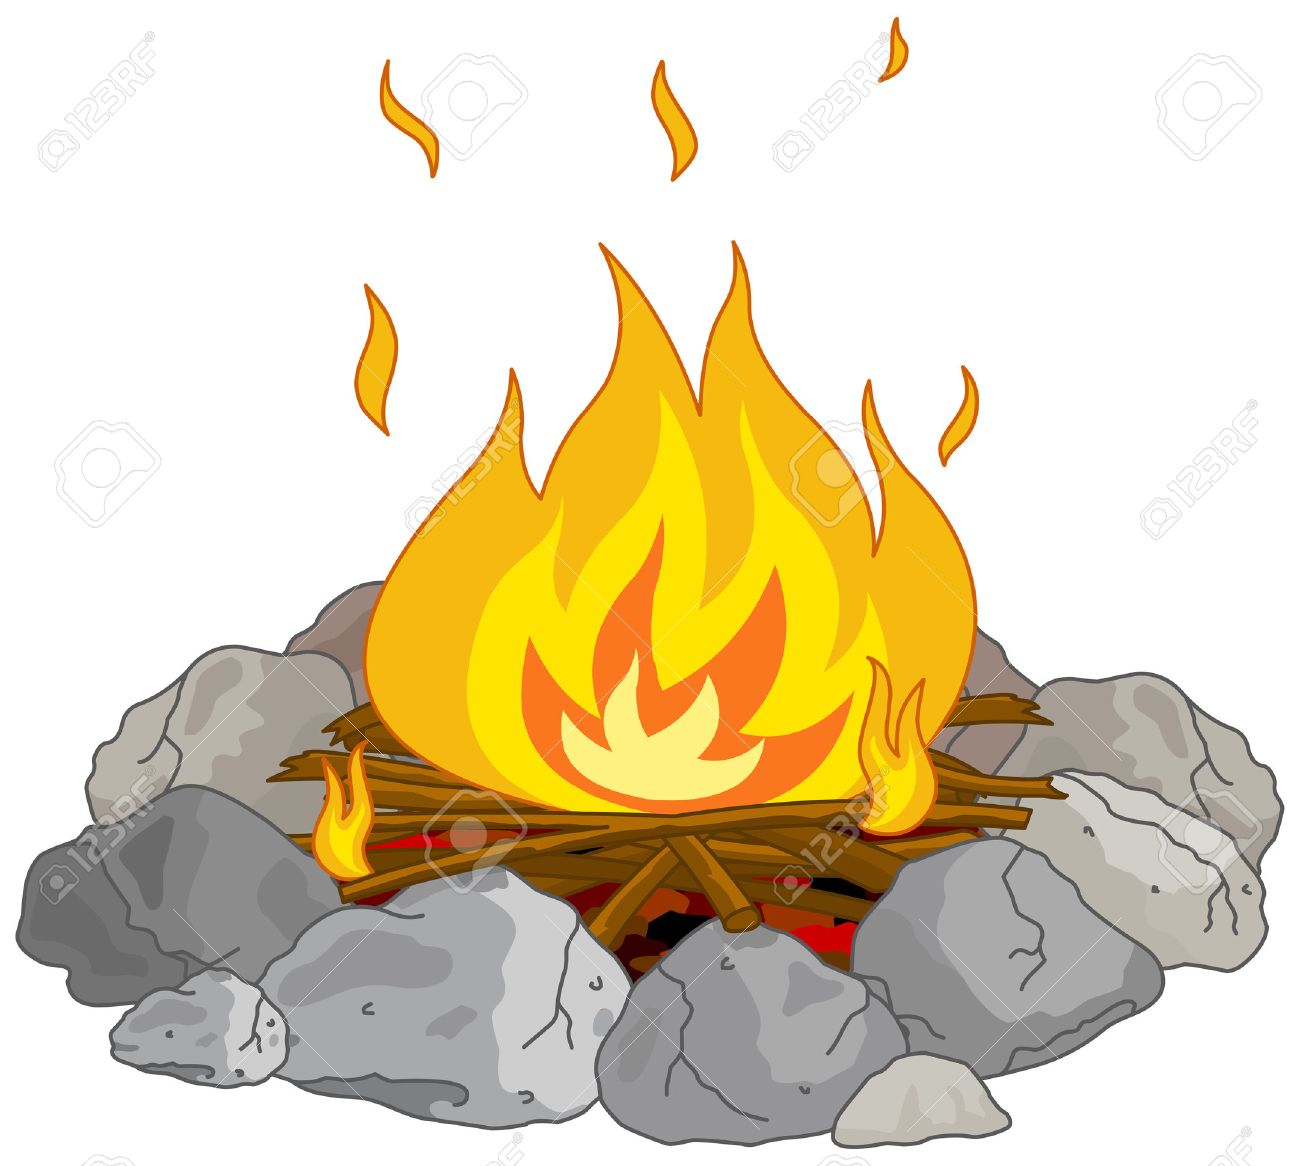 46 199 bonfire cliparts stock vector and royalty free bonfire rh 123rf com bonfire clipart free Bonfire Pictures Free